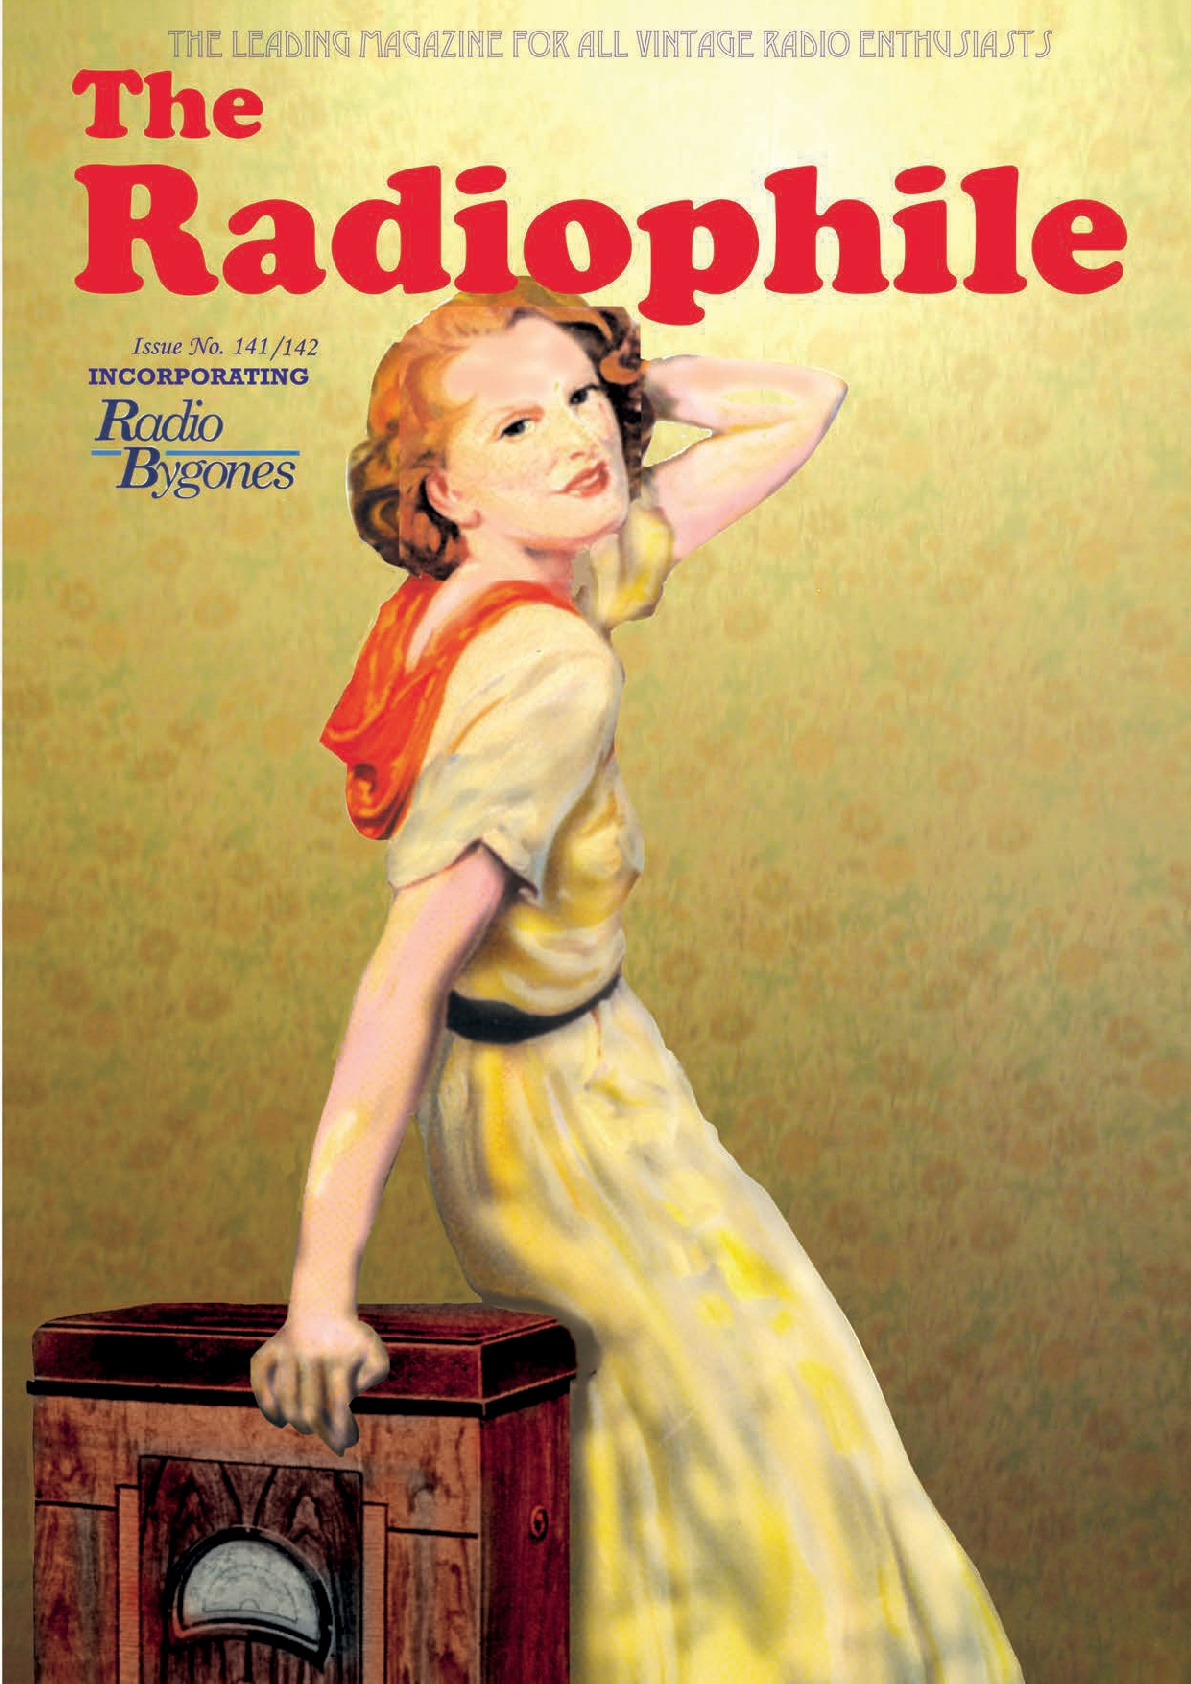 Radiophile Issue 141/142 - PDF